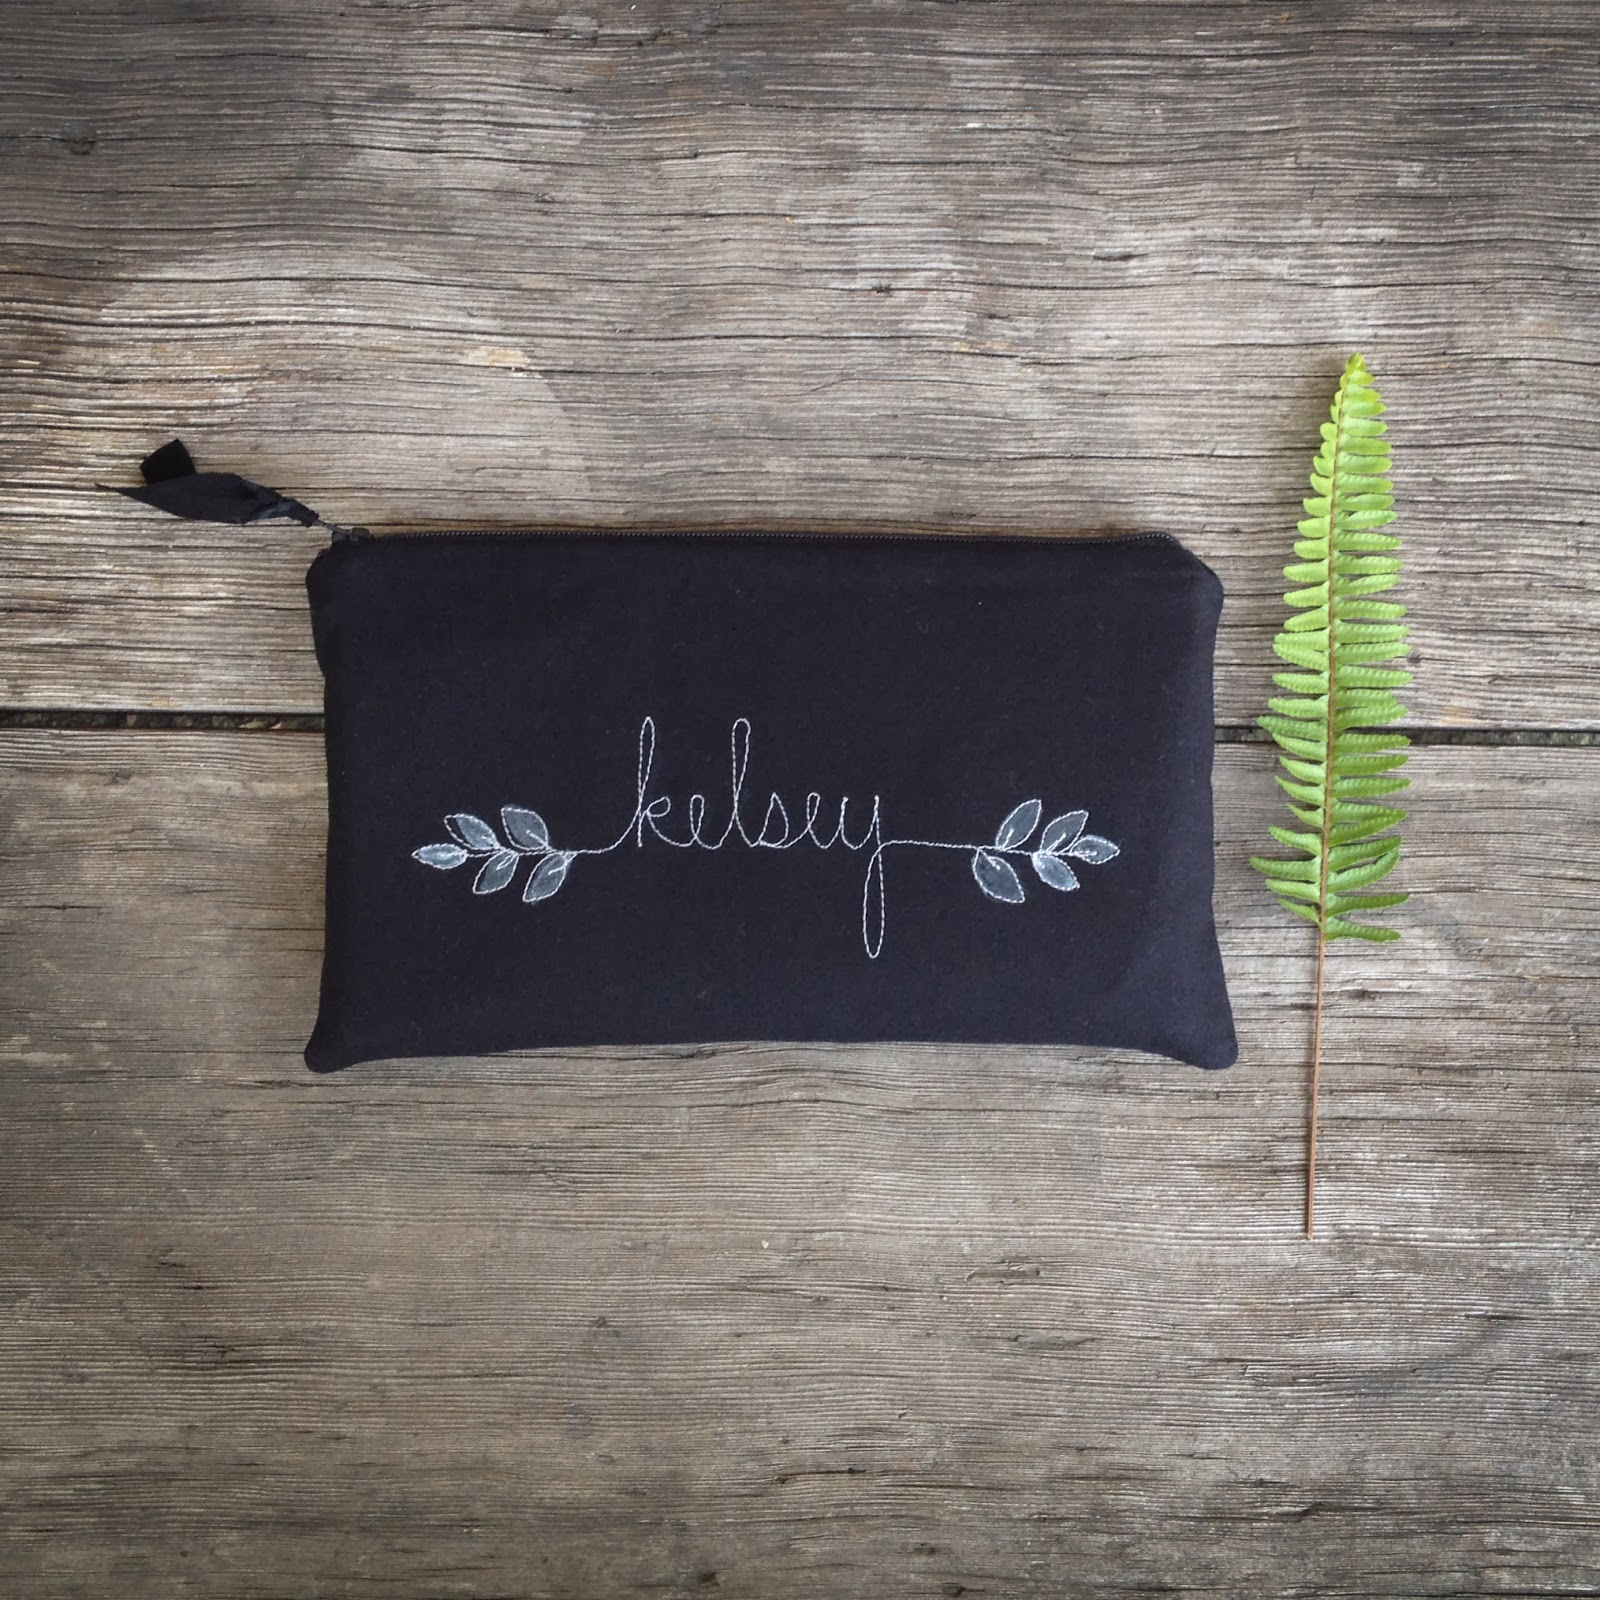 personalized black clutch by mamableudesigns on etsy https://www.etsy.com/listing/174338908/black-clutch-personalized-bridesmaid?ref=shop_home_active_20